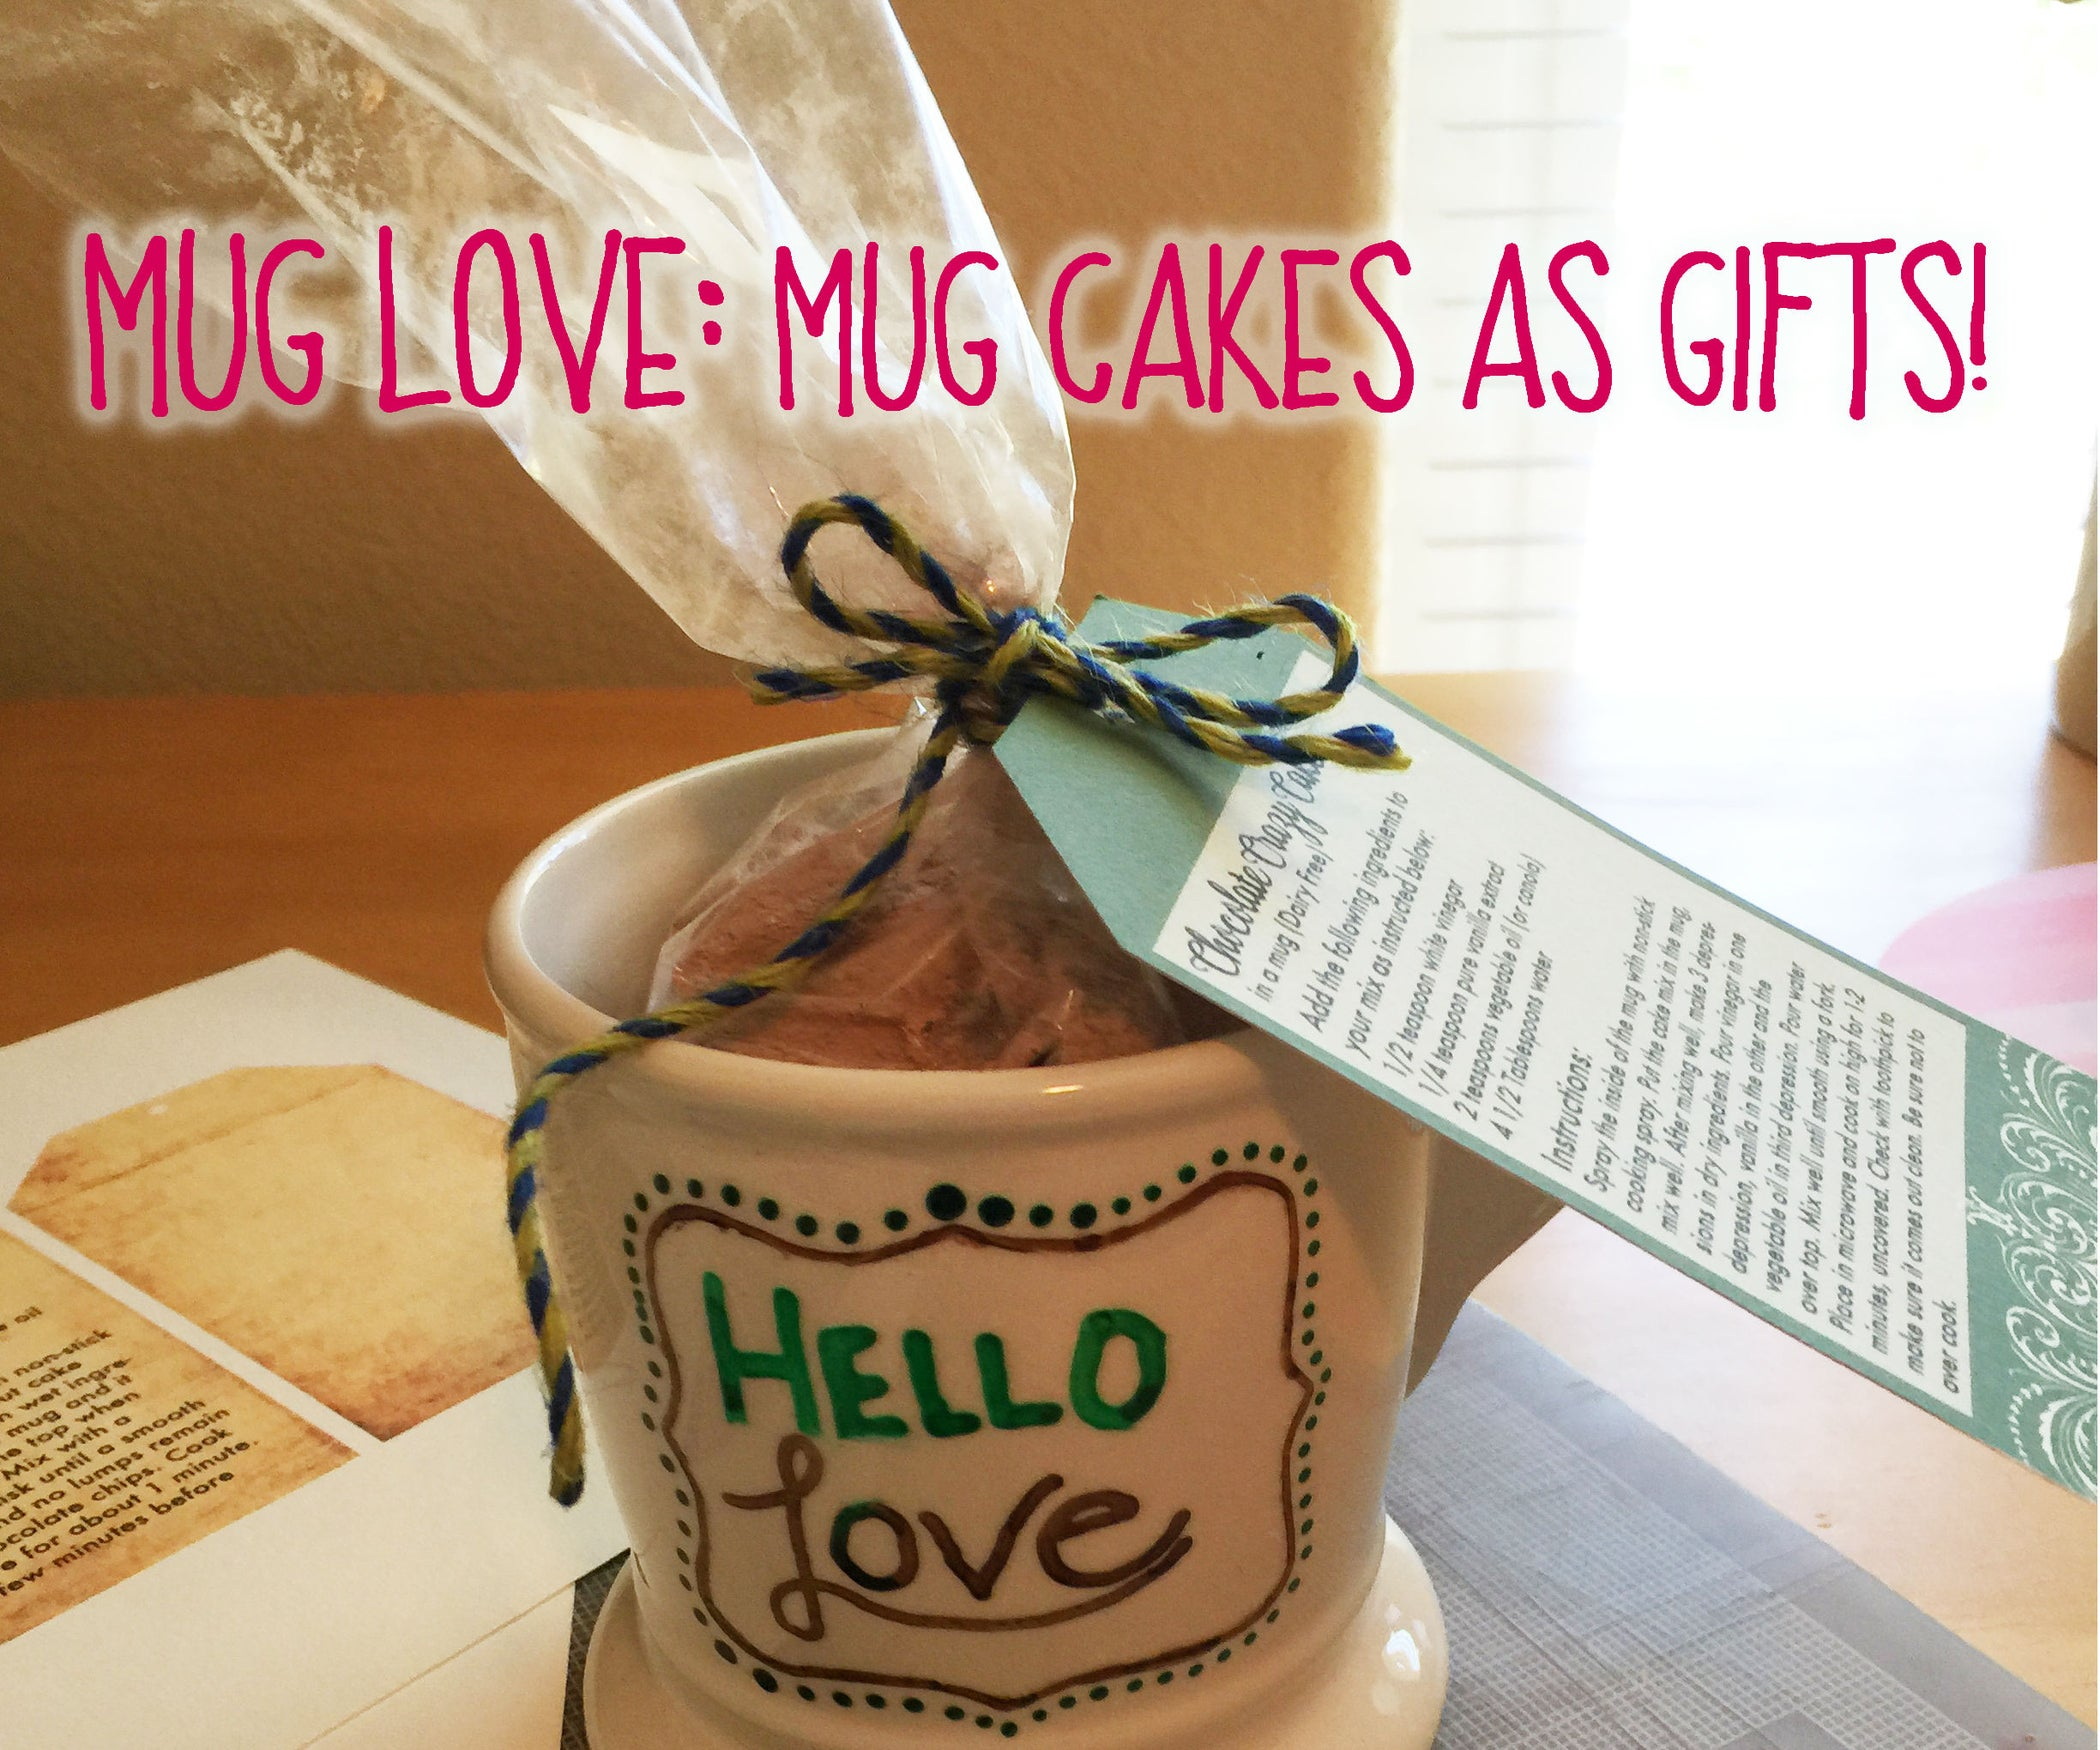 Mug Cake Gift Sets : 4 Steps (with Pictures) - Instructables